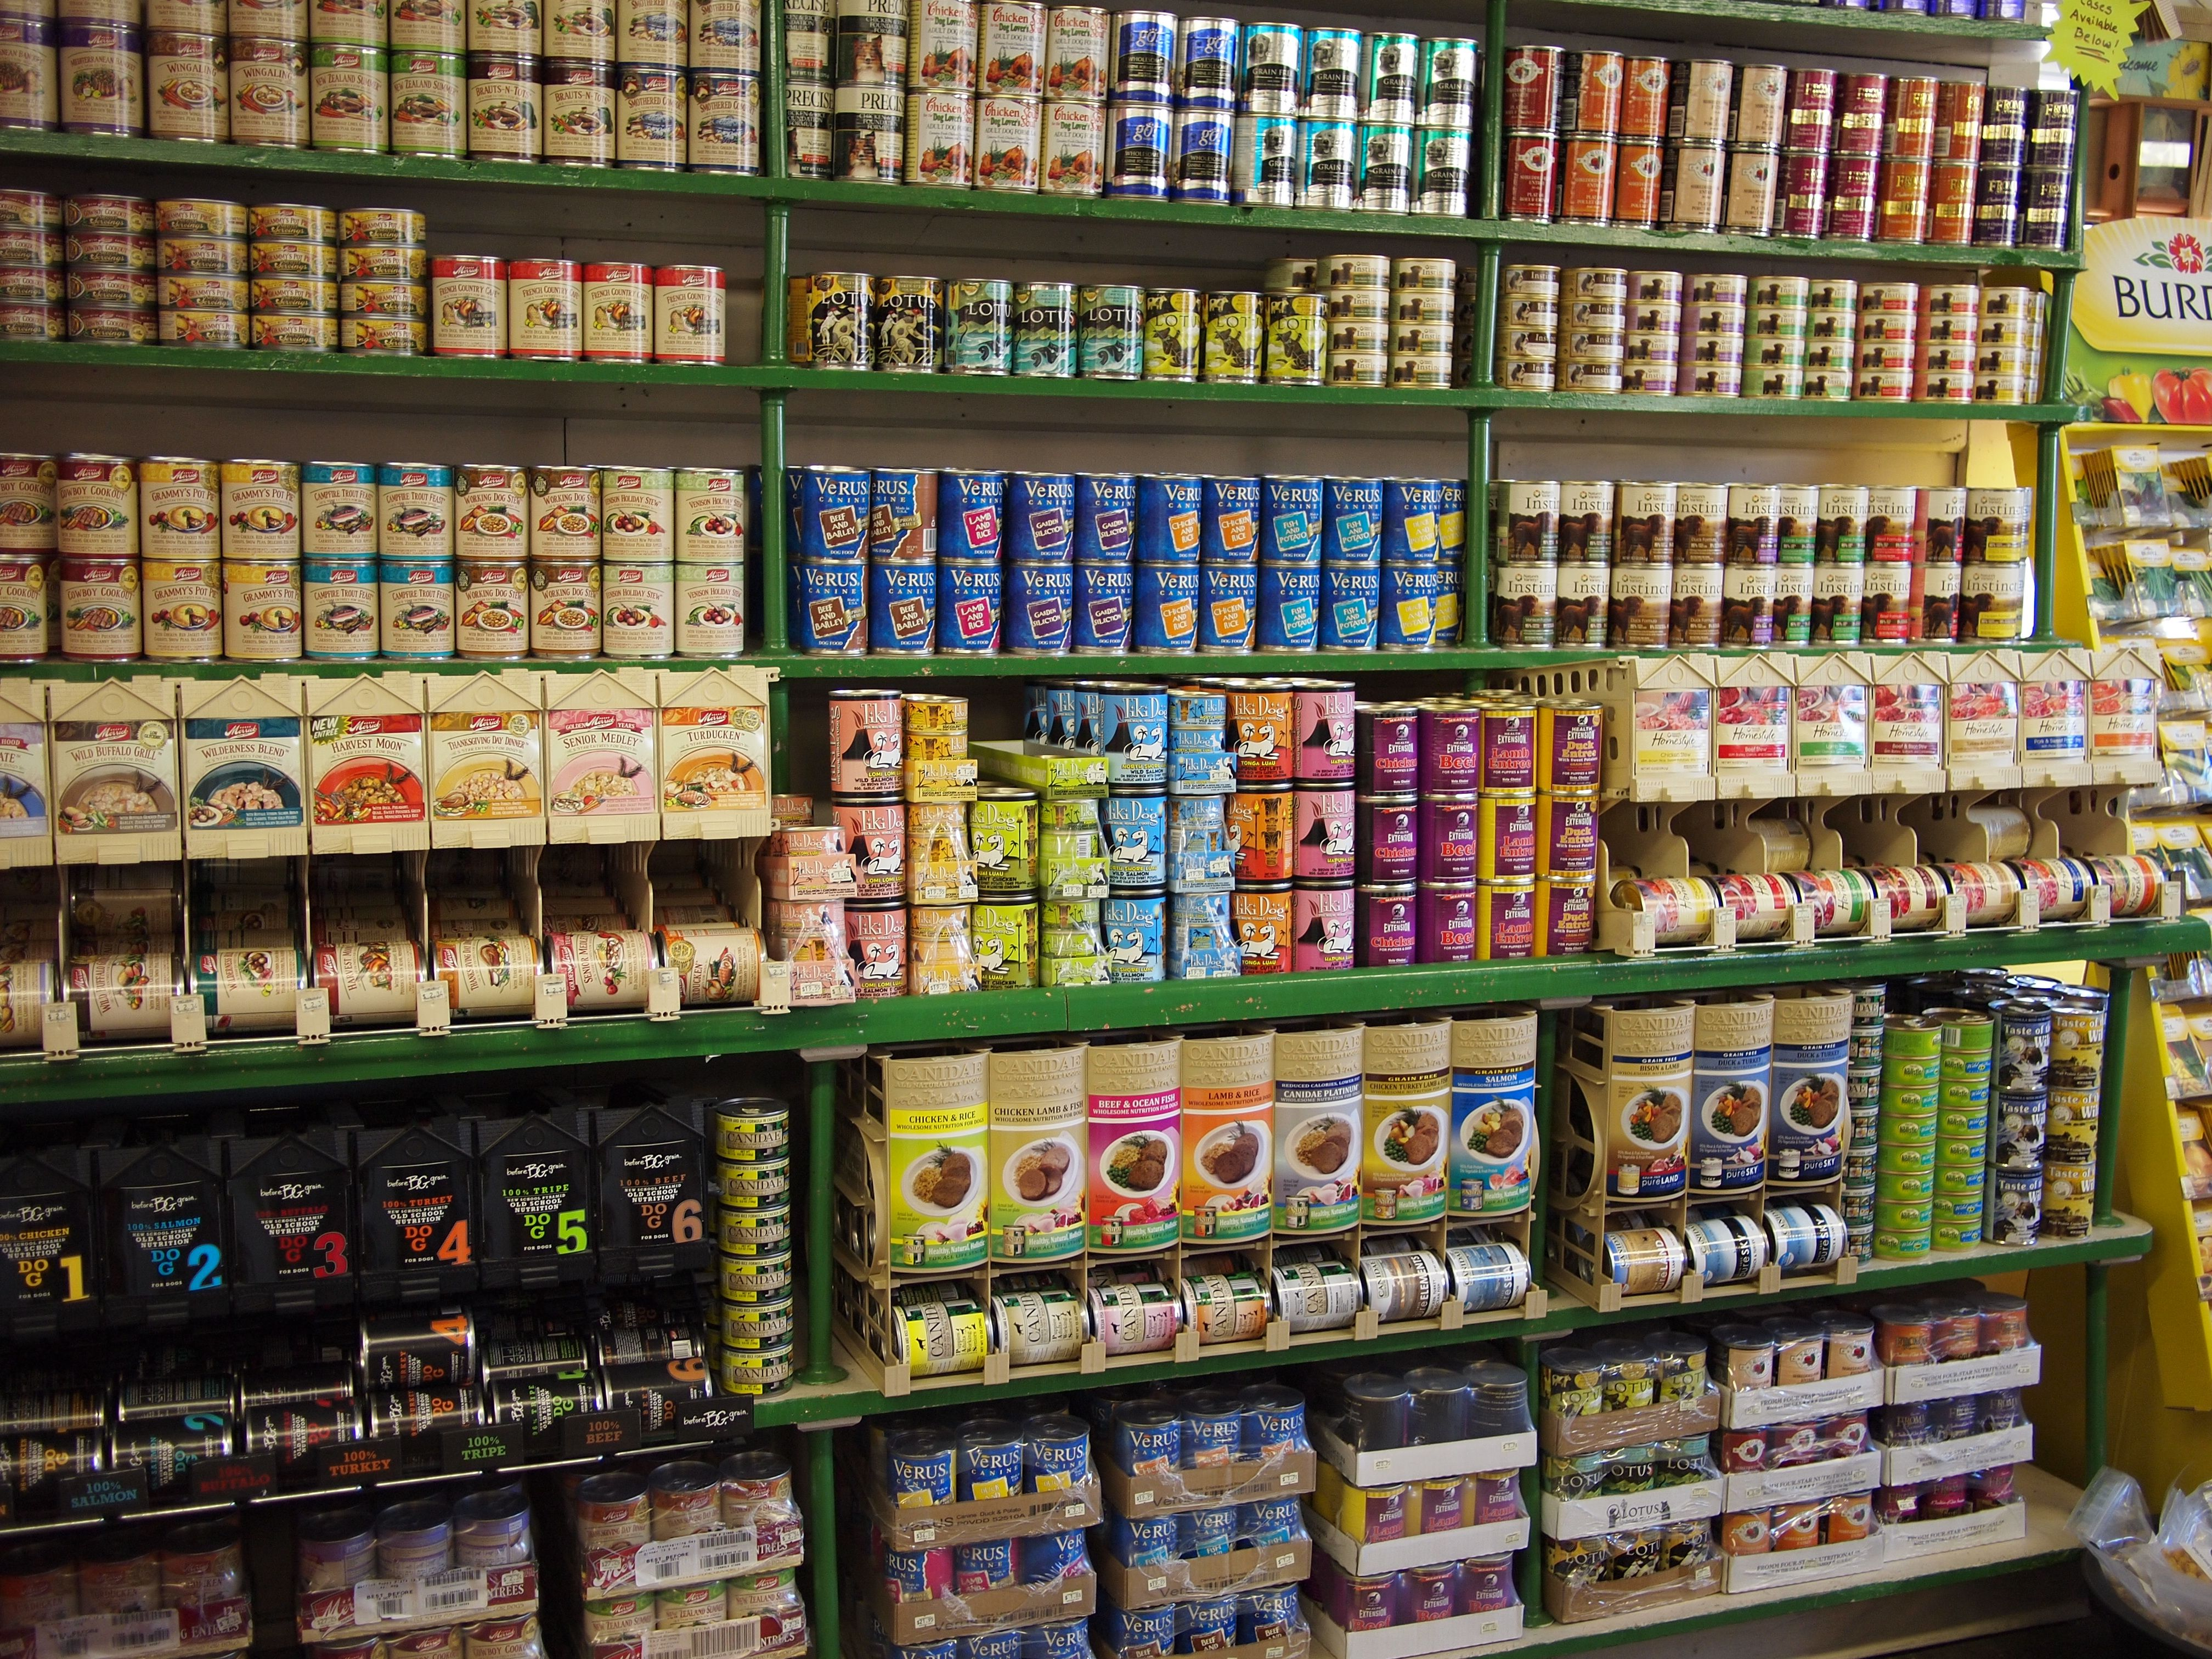 Daminger's canned food wall display Food animals